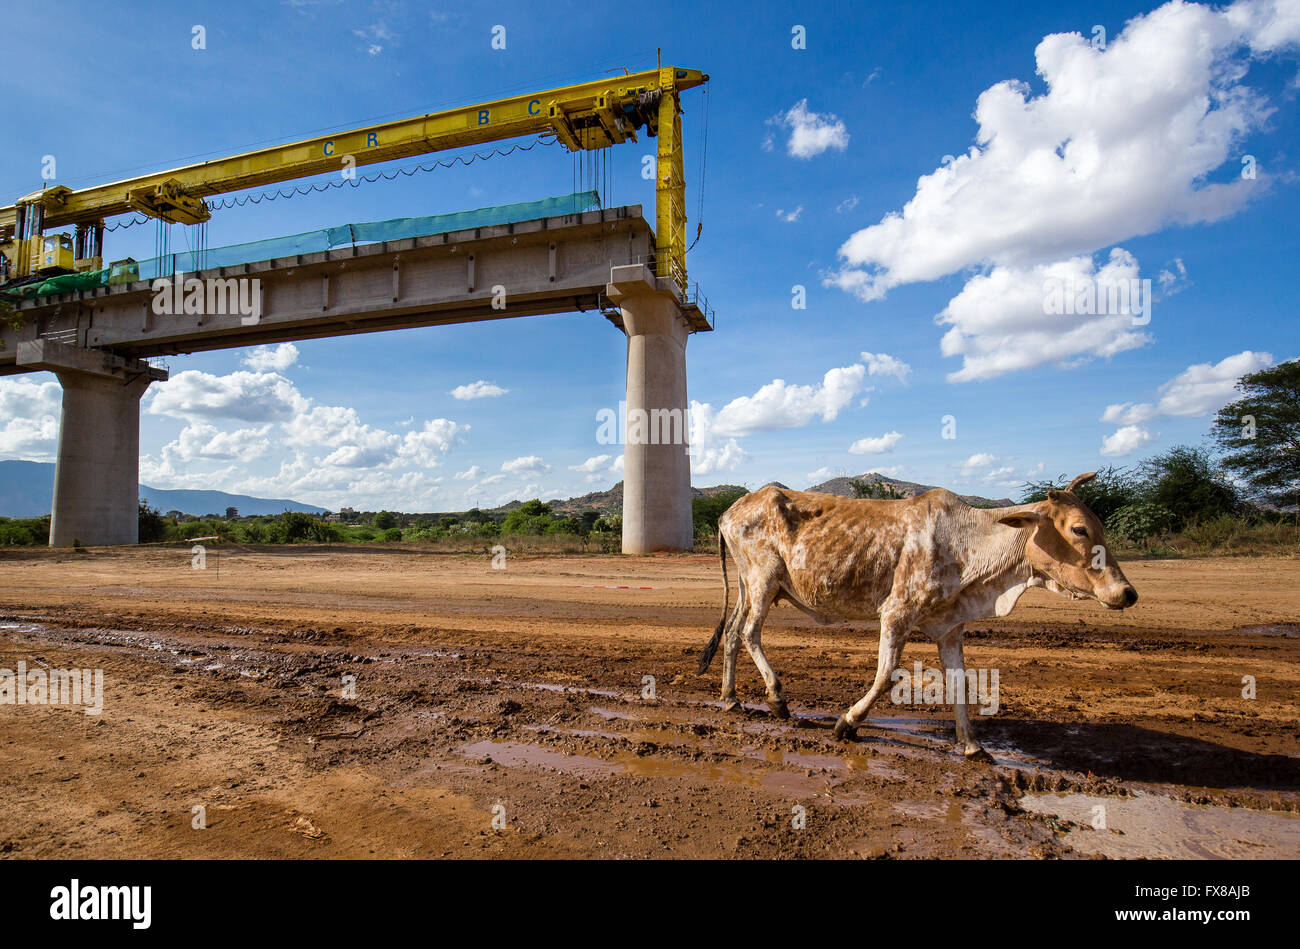 An undernourished Brahman cow walks past the construction site of the Nairobi Mombasa standard gauge railway at - Stock Image